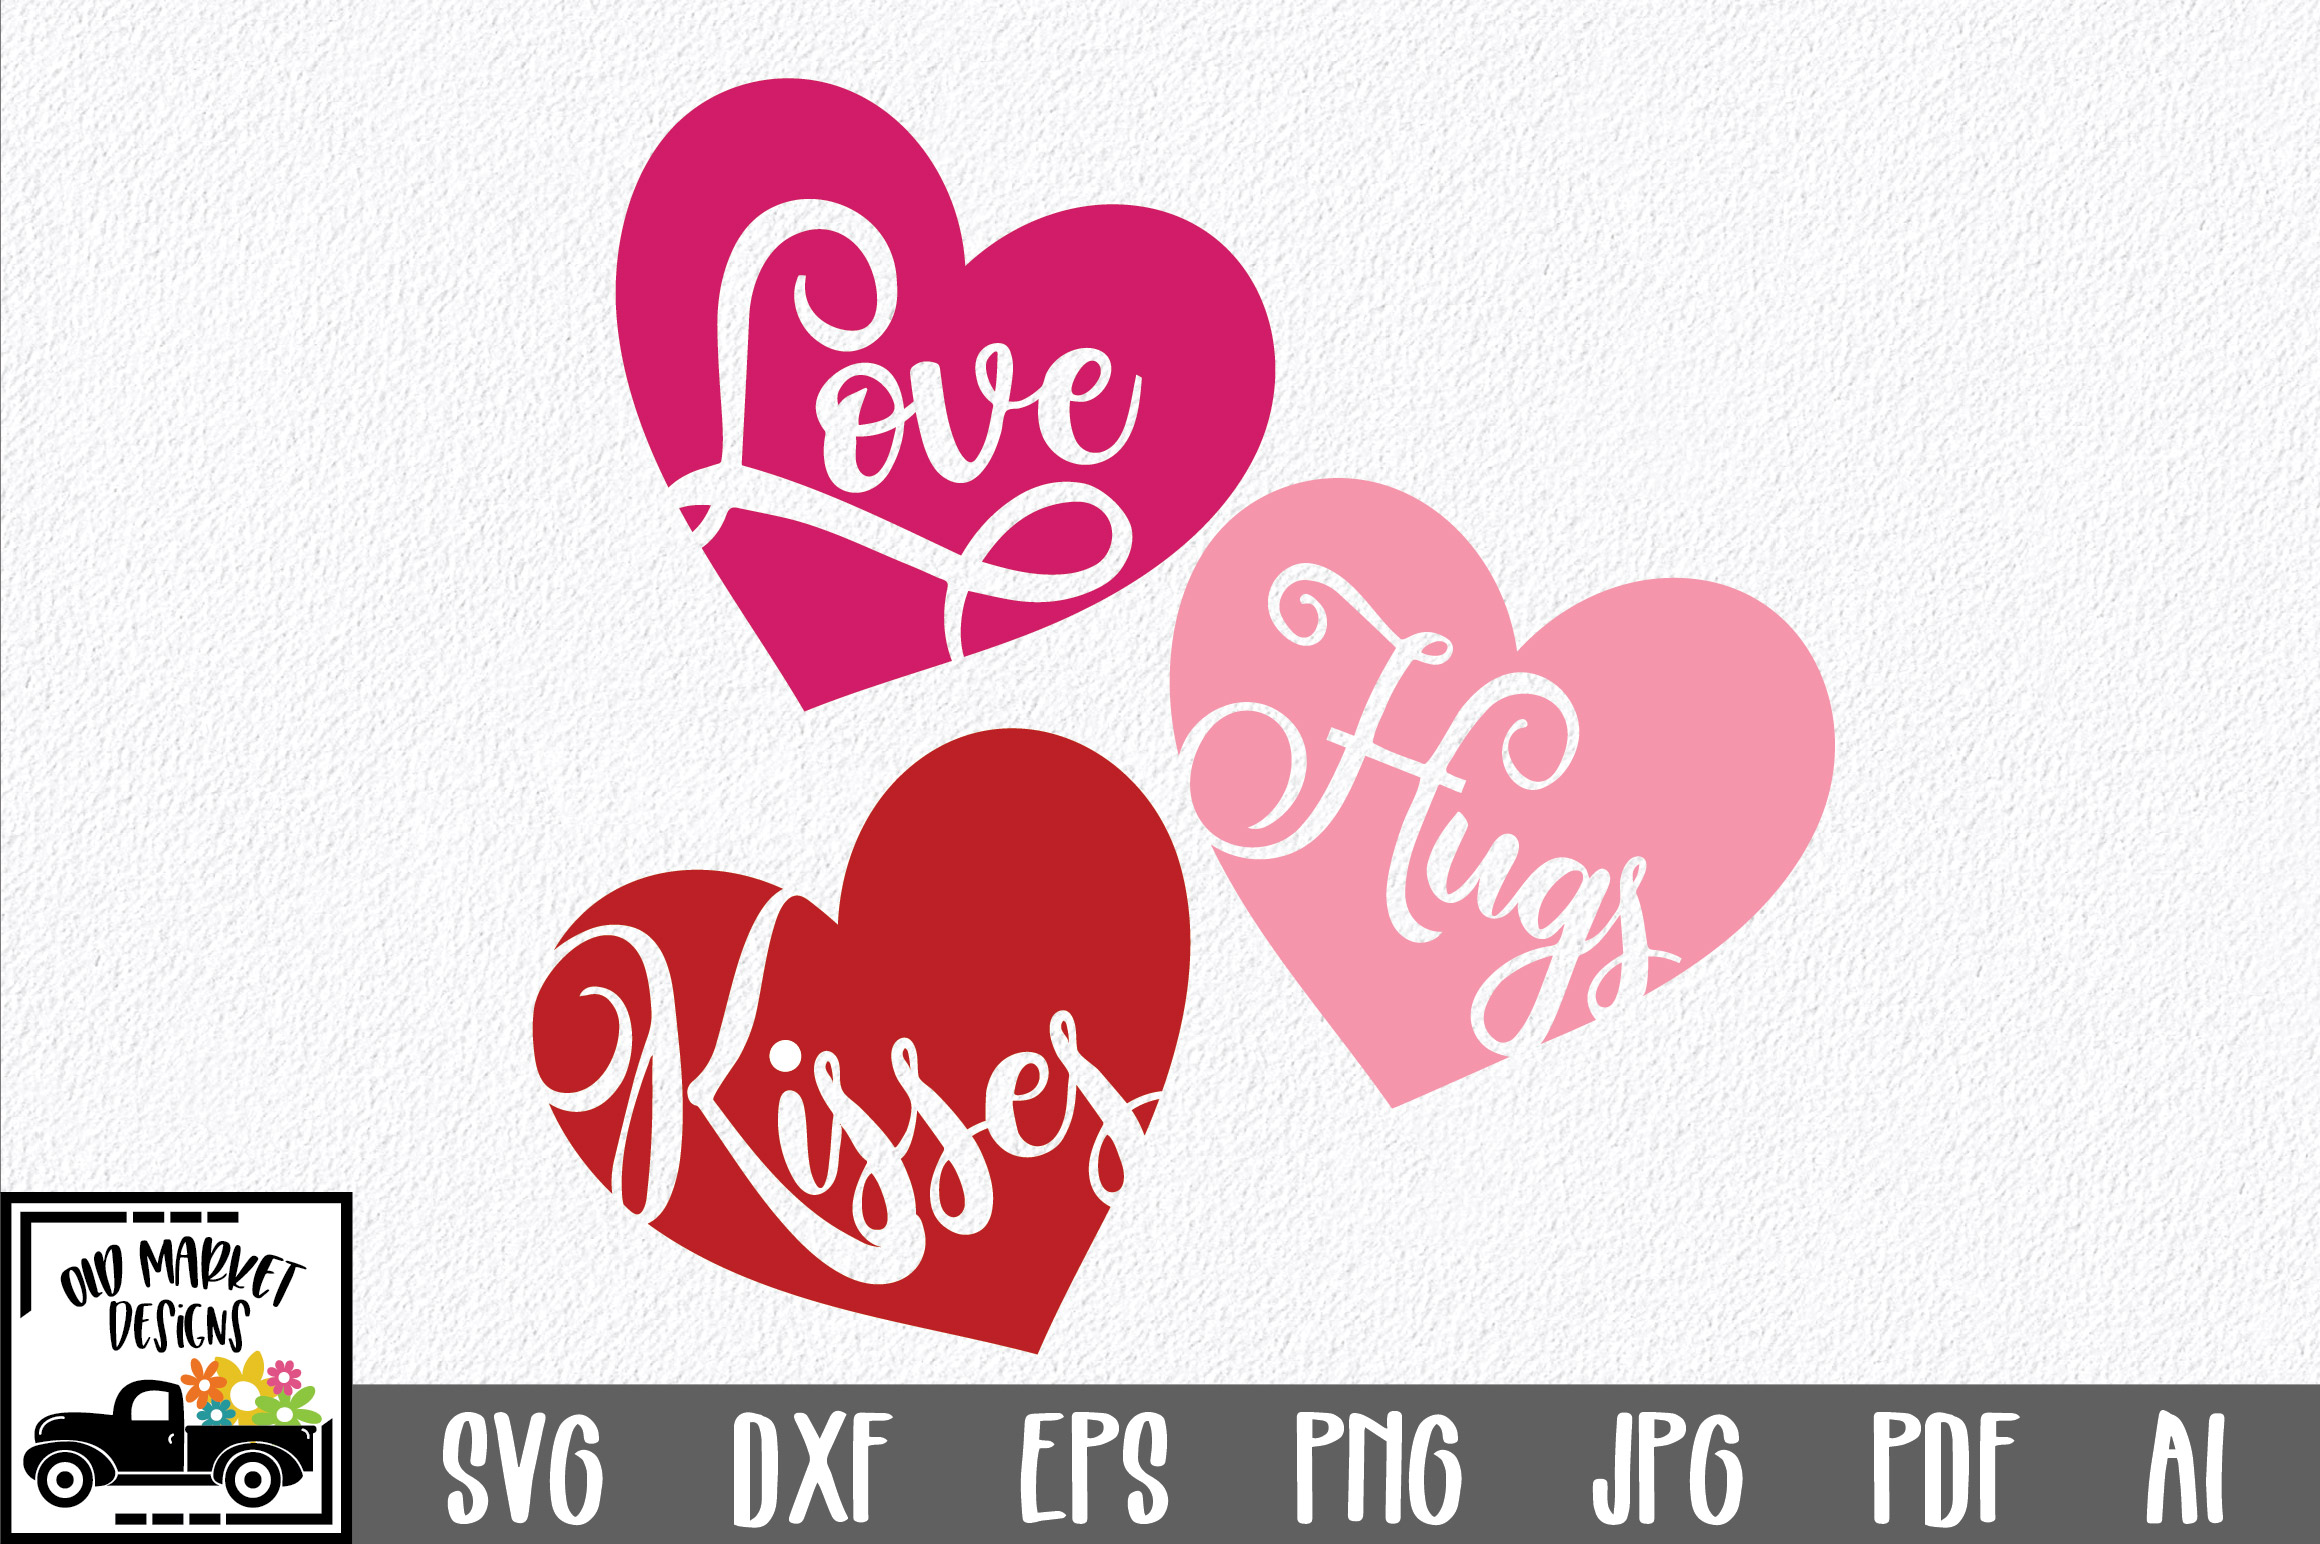 Download Free Love Hugs Kisses Svg Graphic By Oldmarketdesigns Creative Fabrica for Cricut Explore, Silhouette and other cutting machines.